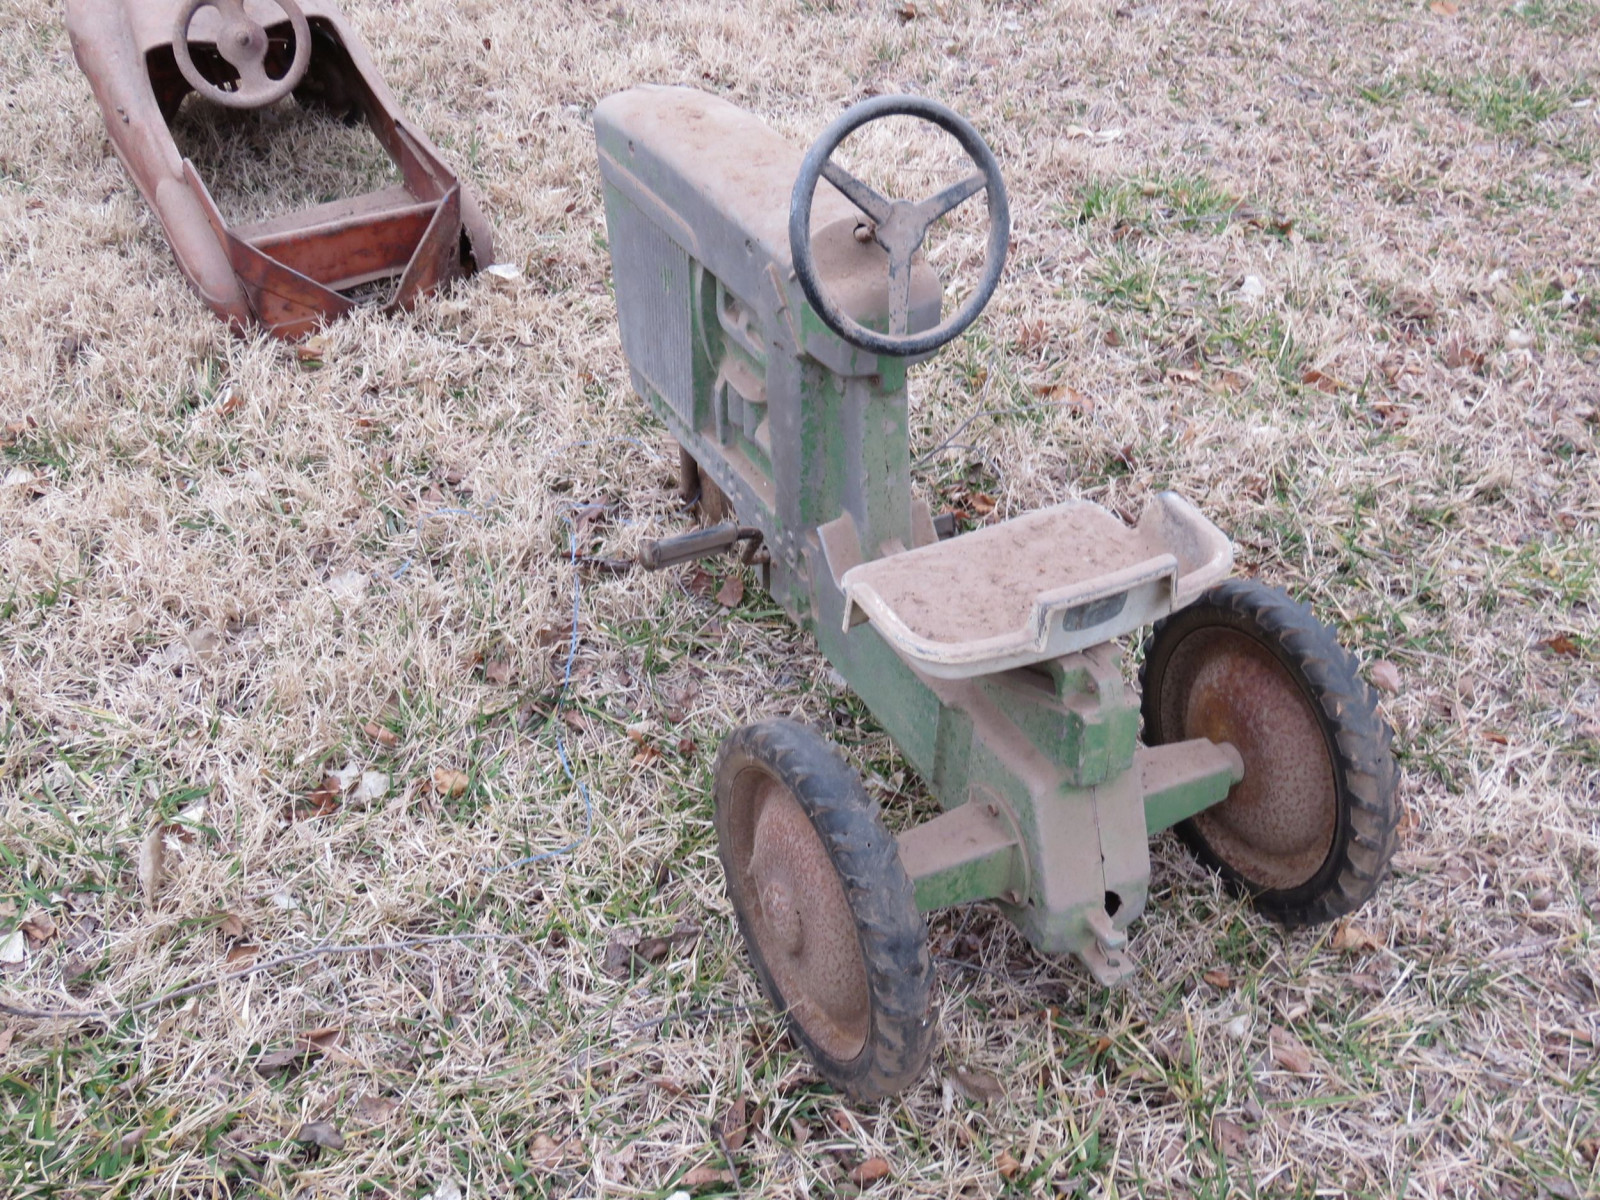 John Deere Model A Pedal Tractor - Image 3